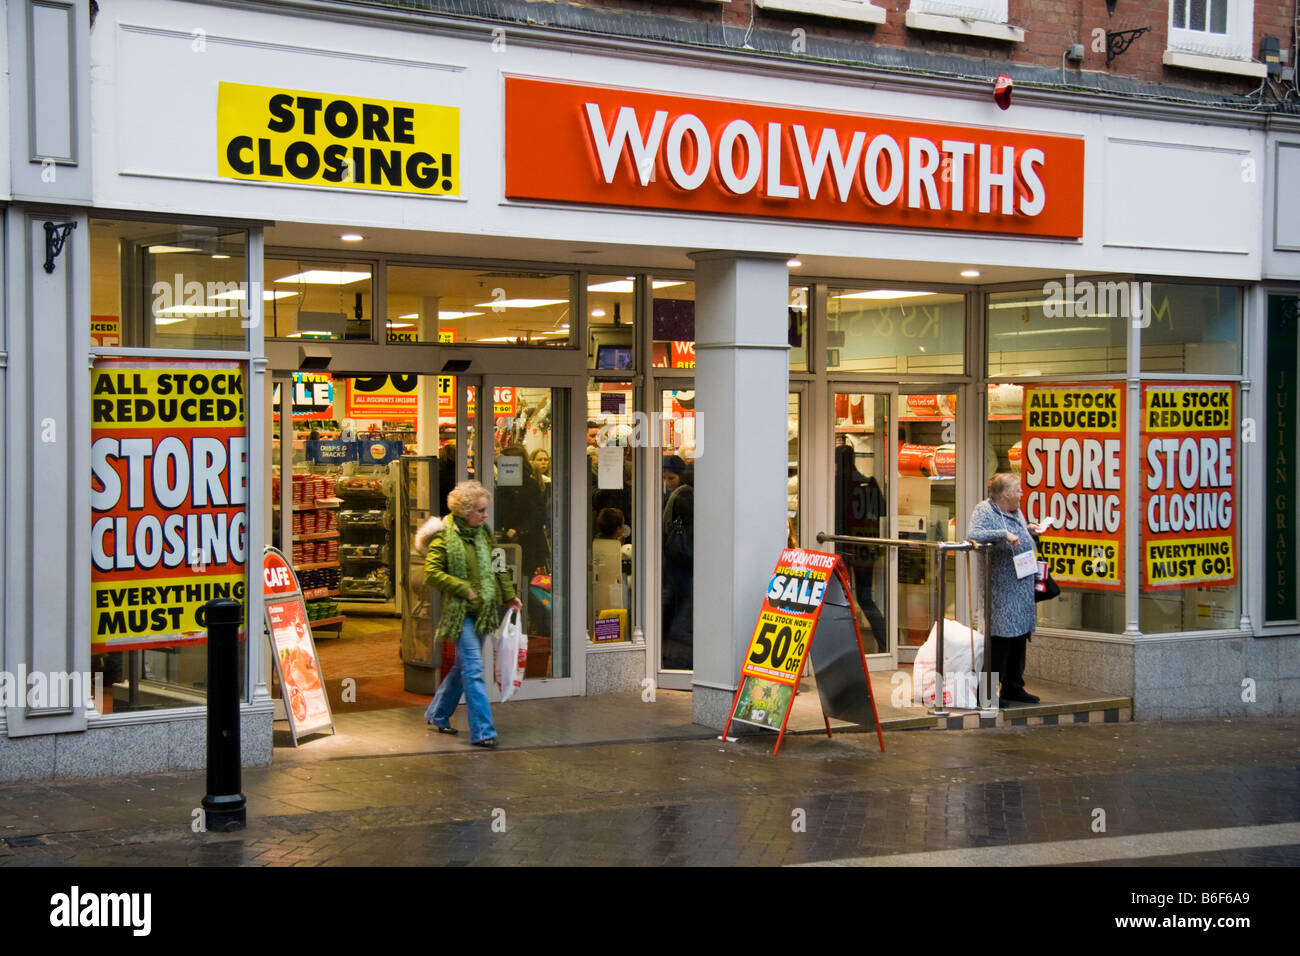 Woolworths store closing down in Windsor, Berkshire, England, UK - Stock Image